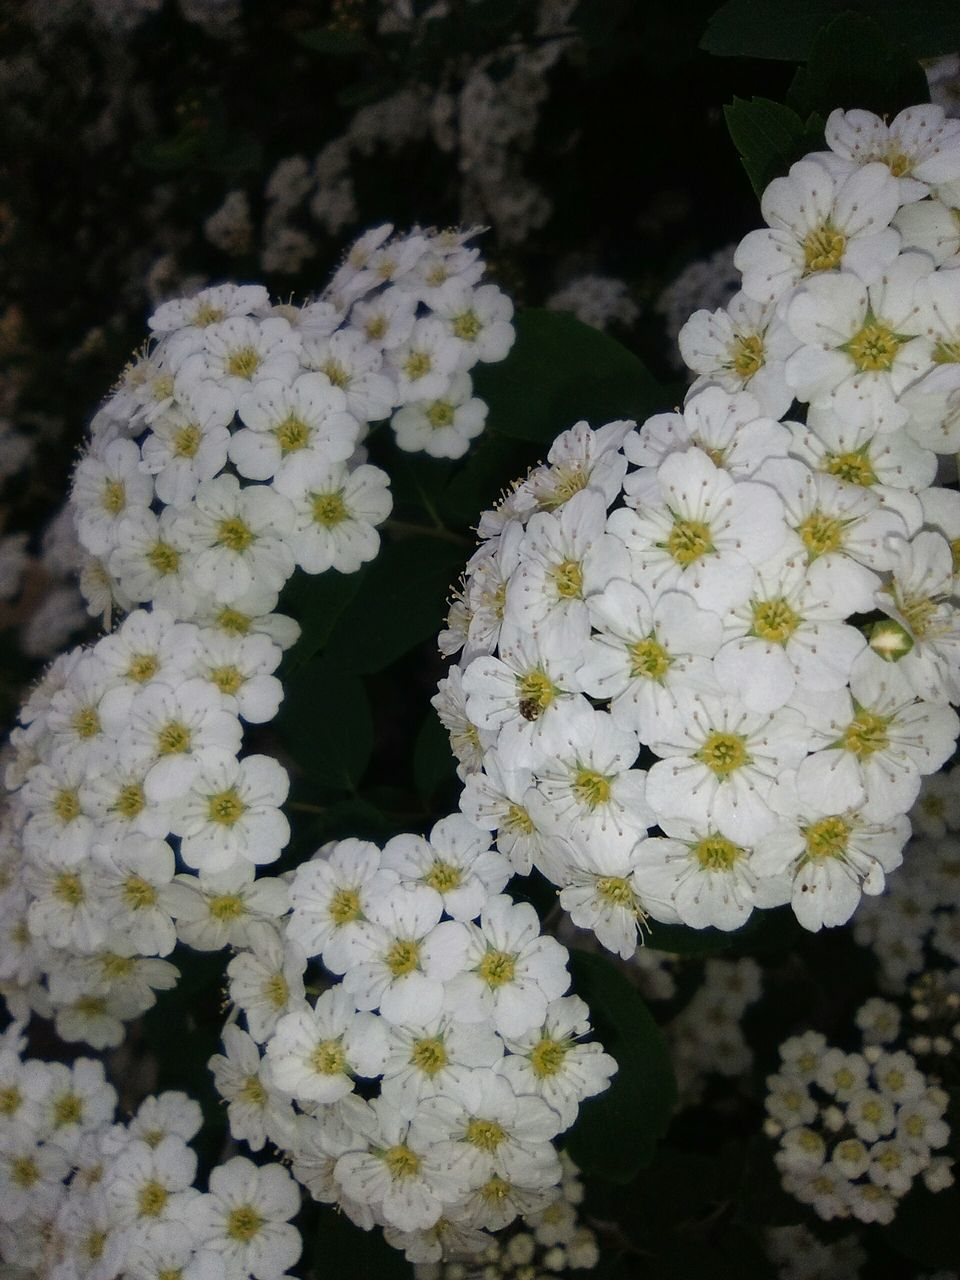 flower, white color, nature, beauty in nature, plant, petal, fragility, growth, freshness, blooming, no people, day, outdoors, flower head, close-up